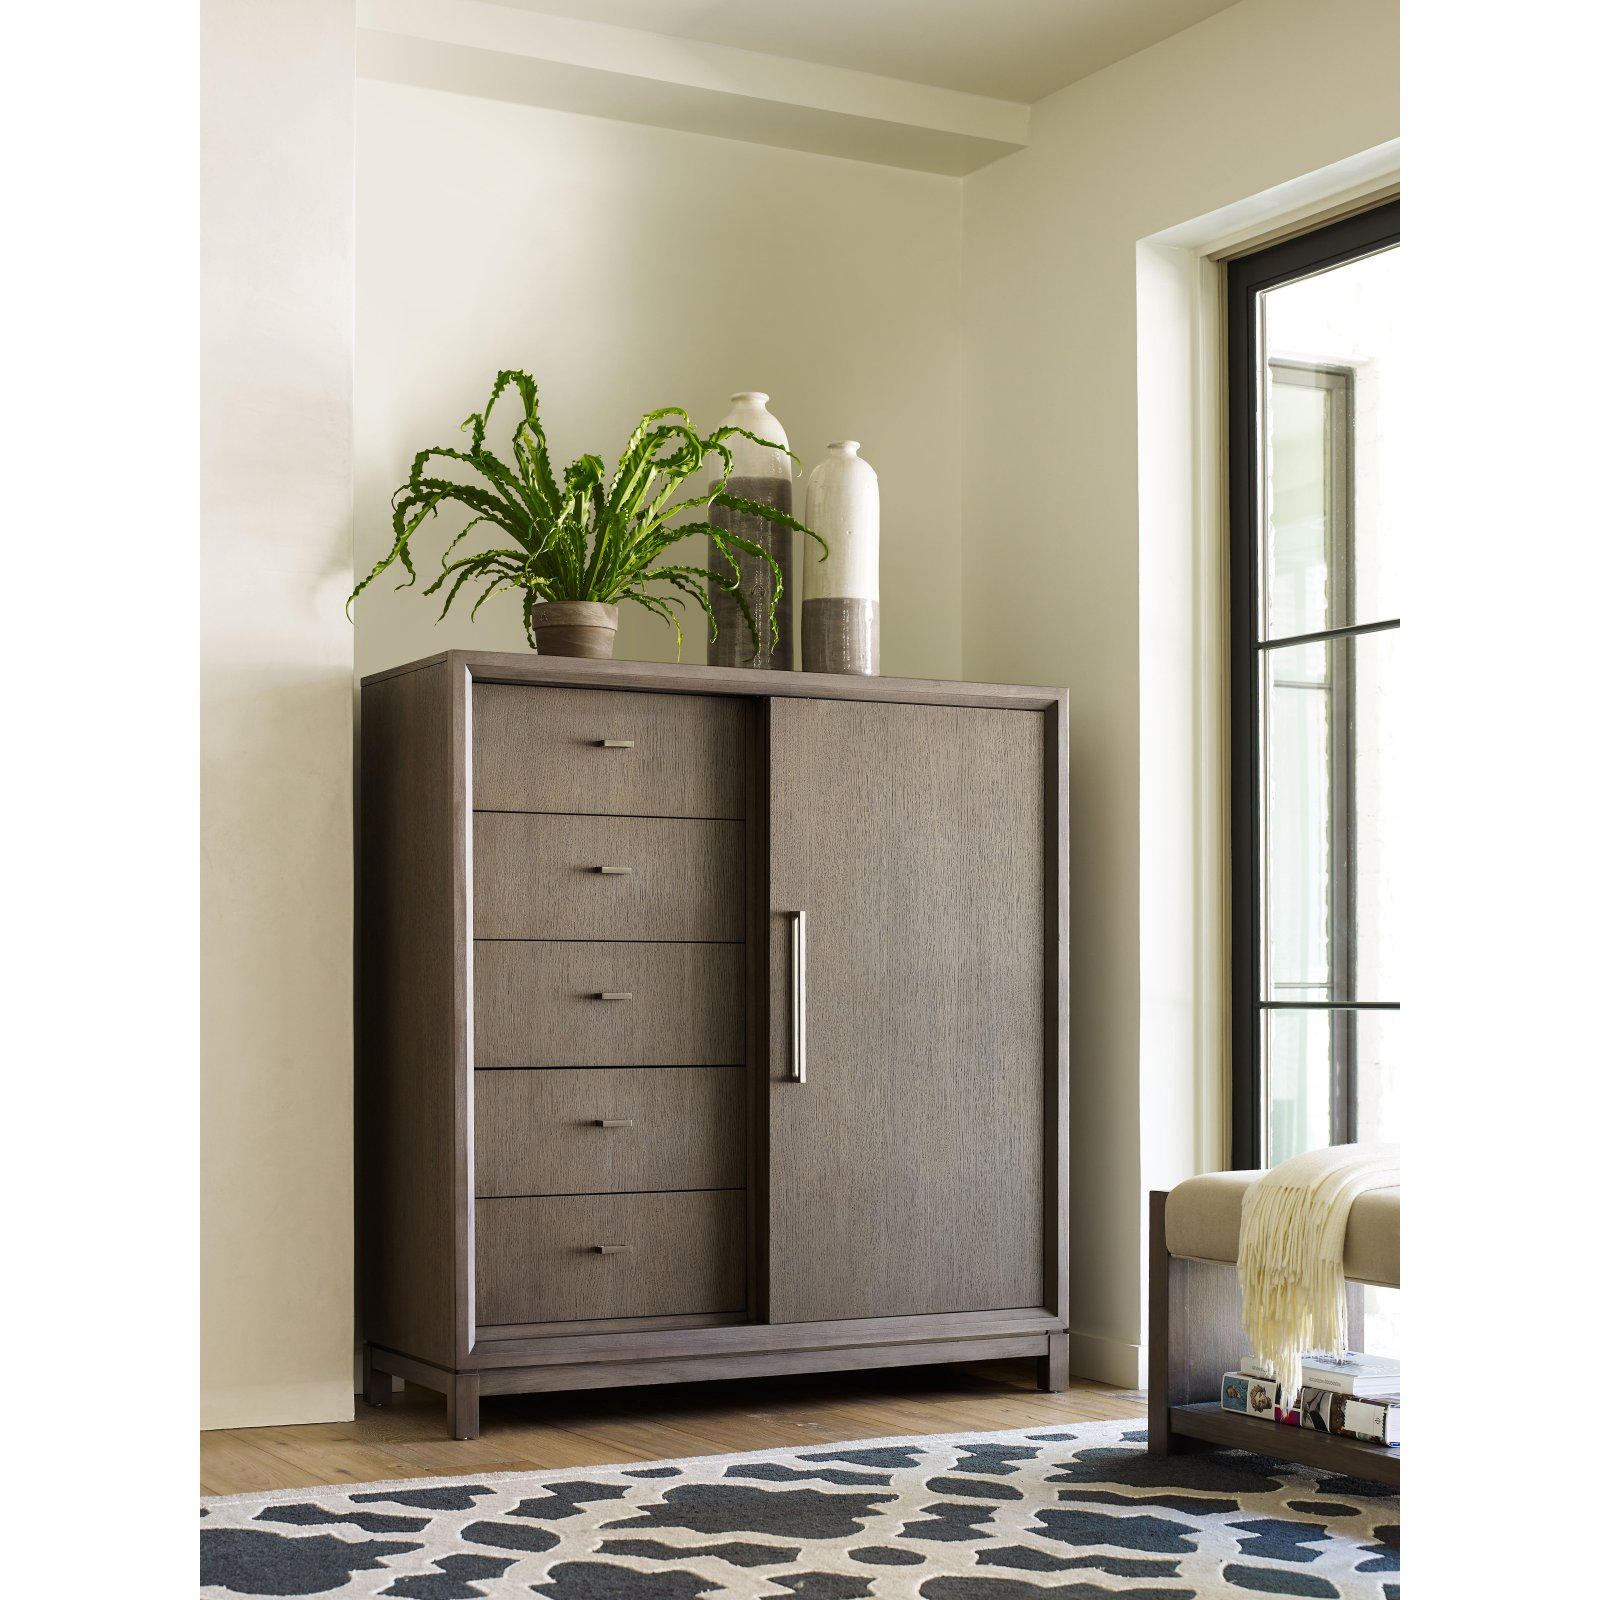 Rachael Ray Highline 5 Drawer Sliding Door Chest With Wine Rack Sliding Doors Interior Legacy Classic Furniture Doors Interior